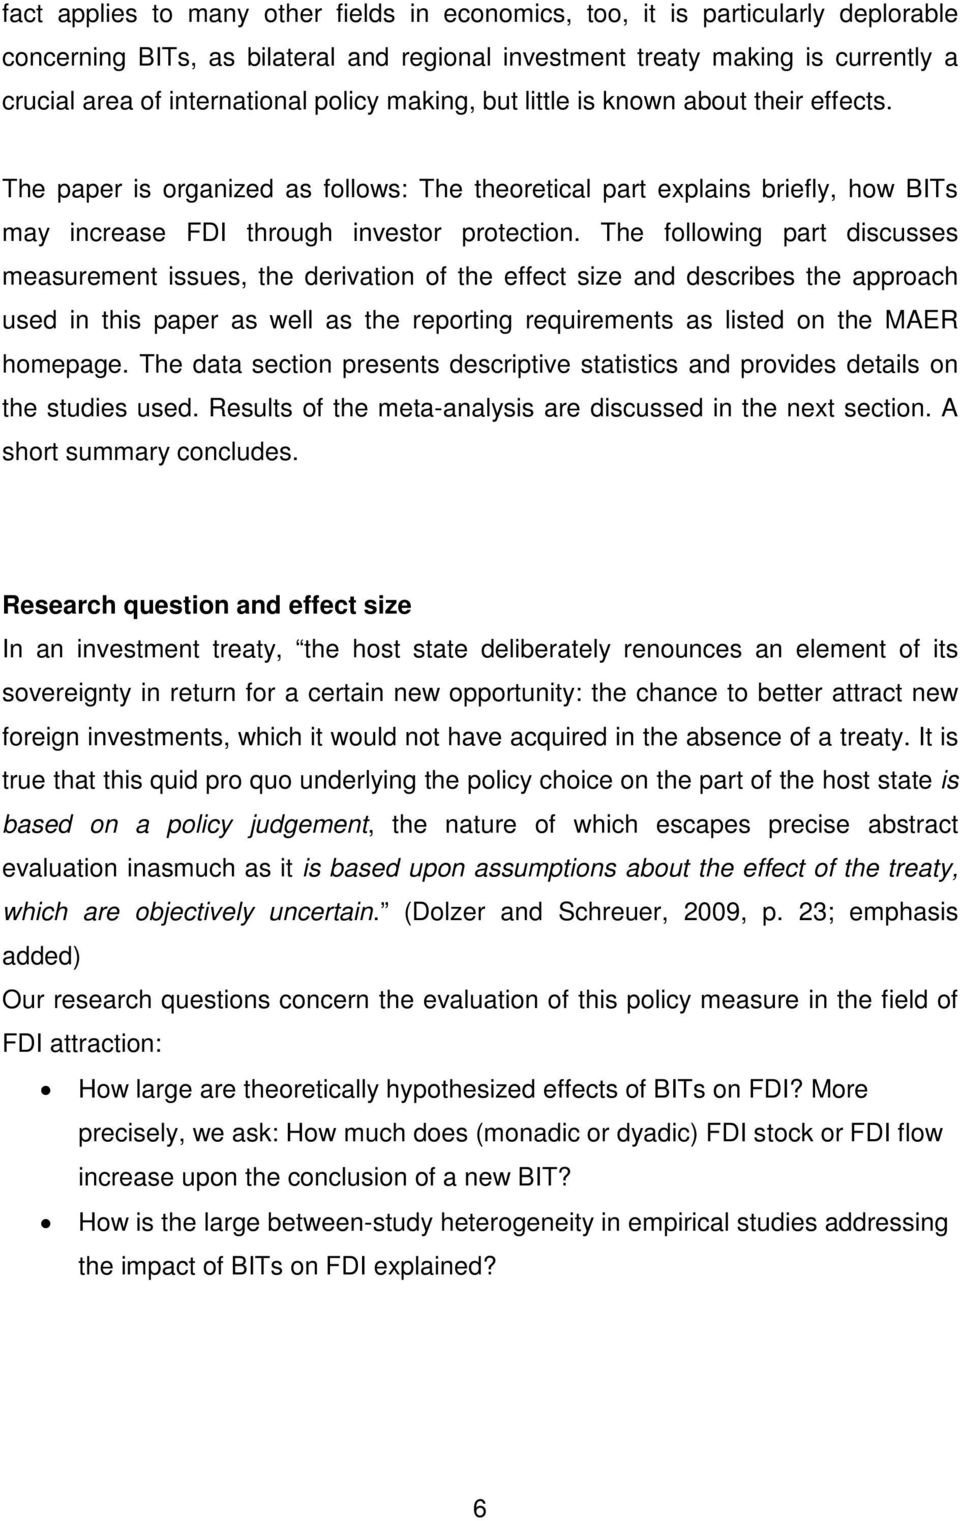 The following part discusses measurement issues, the derivation of the effect size and describes the approach used in this paper as well as the reporting requirements as listed on the MAER homepage.